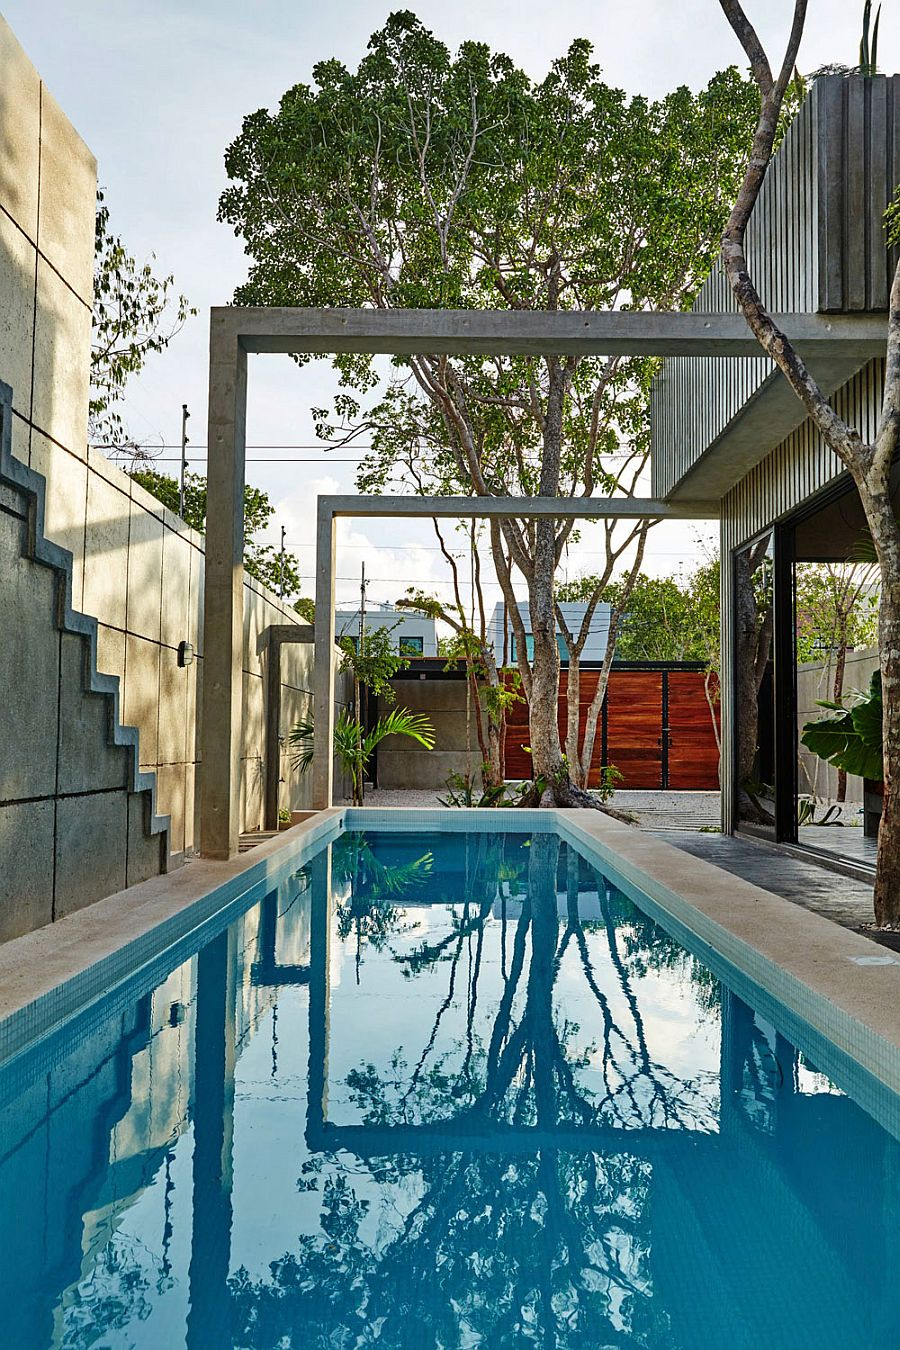 Relaxing small pool area of contemporary home in Mexico A Splash of Color and Polished Cement: Casa T in Mexico